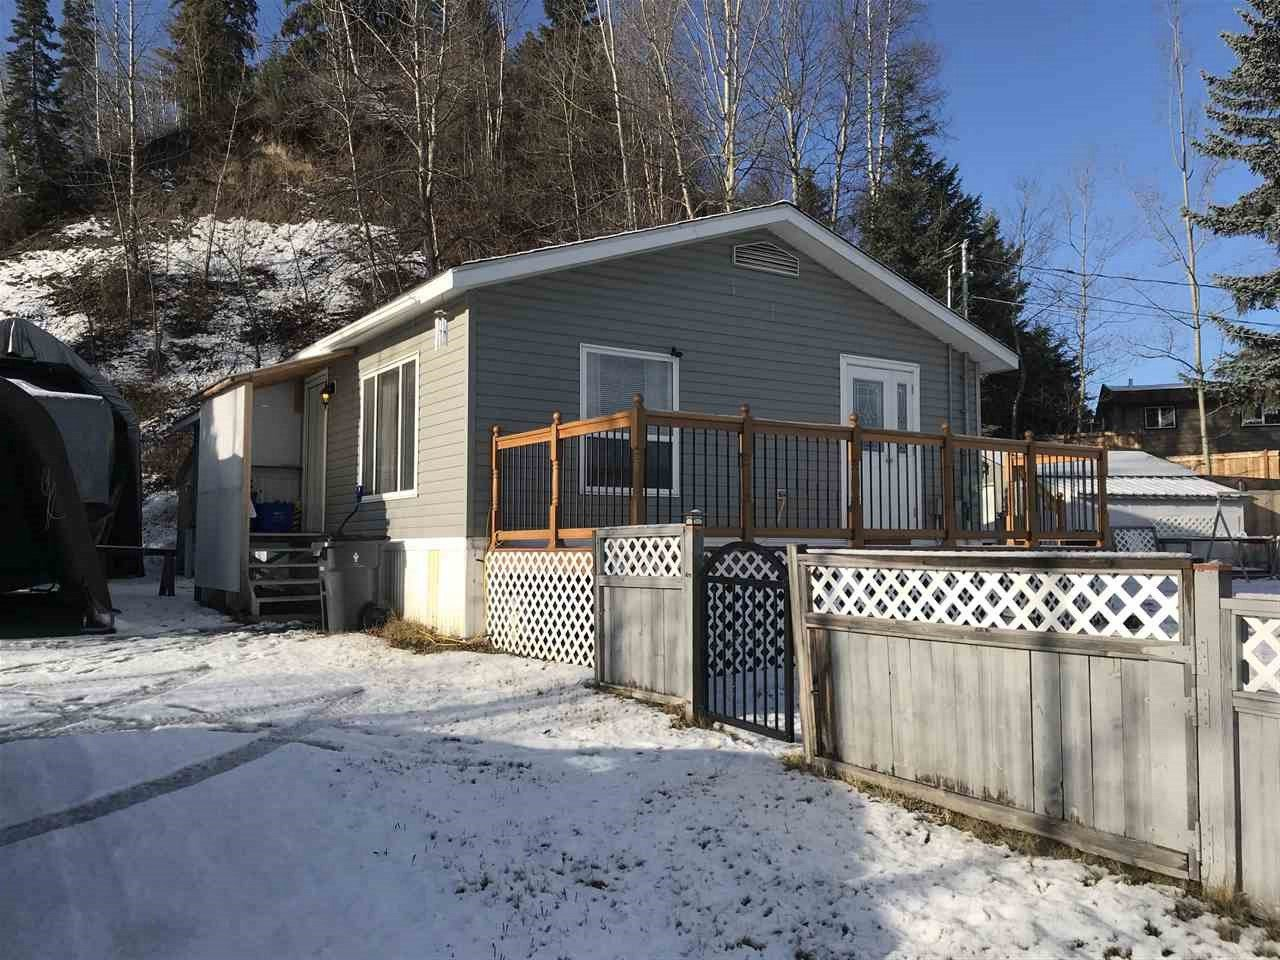 Photo 16: Photos: 4881 RANDLE Road in Prince George: Hart Highway Manufactured Home for sale (PG City North (Zone 73))  : MLS®# R2422011